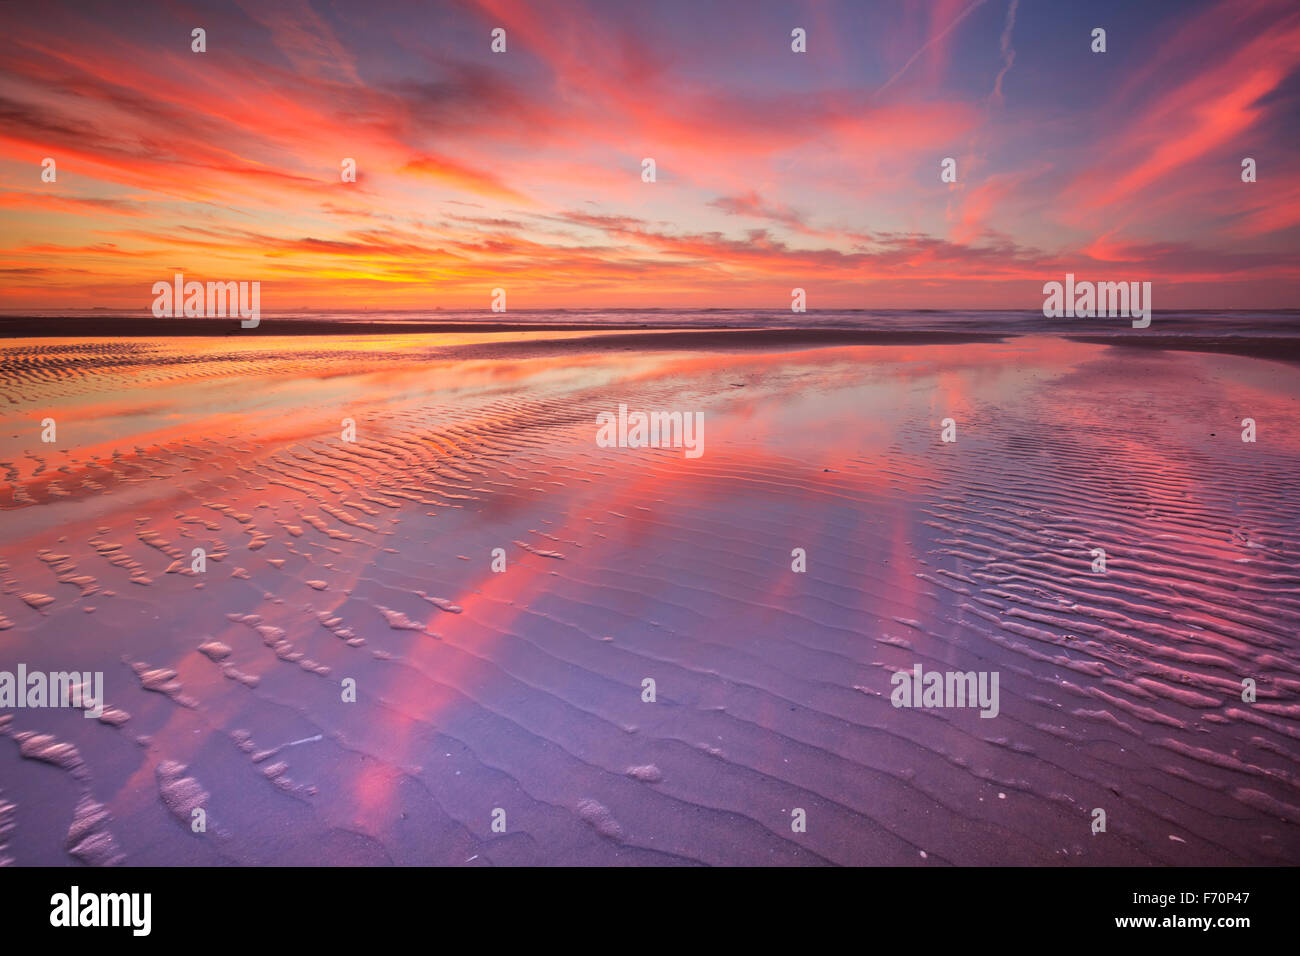 Beautiful sunset and reflections on the beach at low tide. - Stock Image